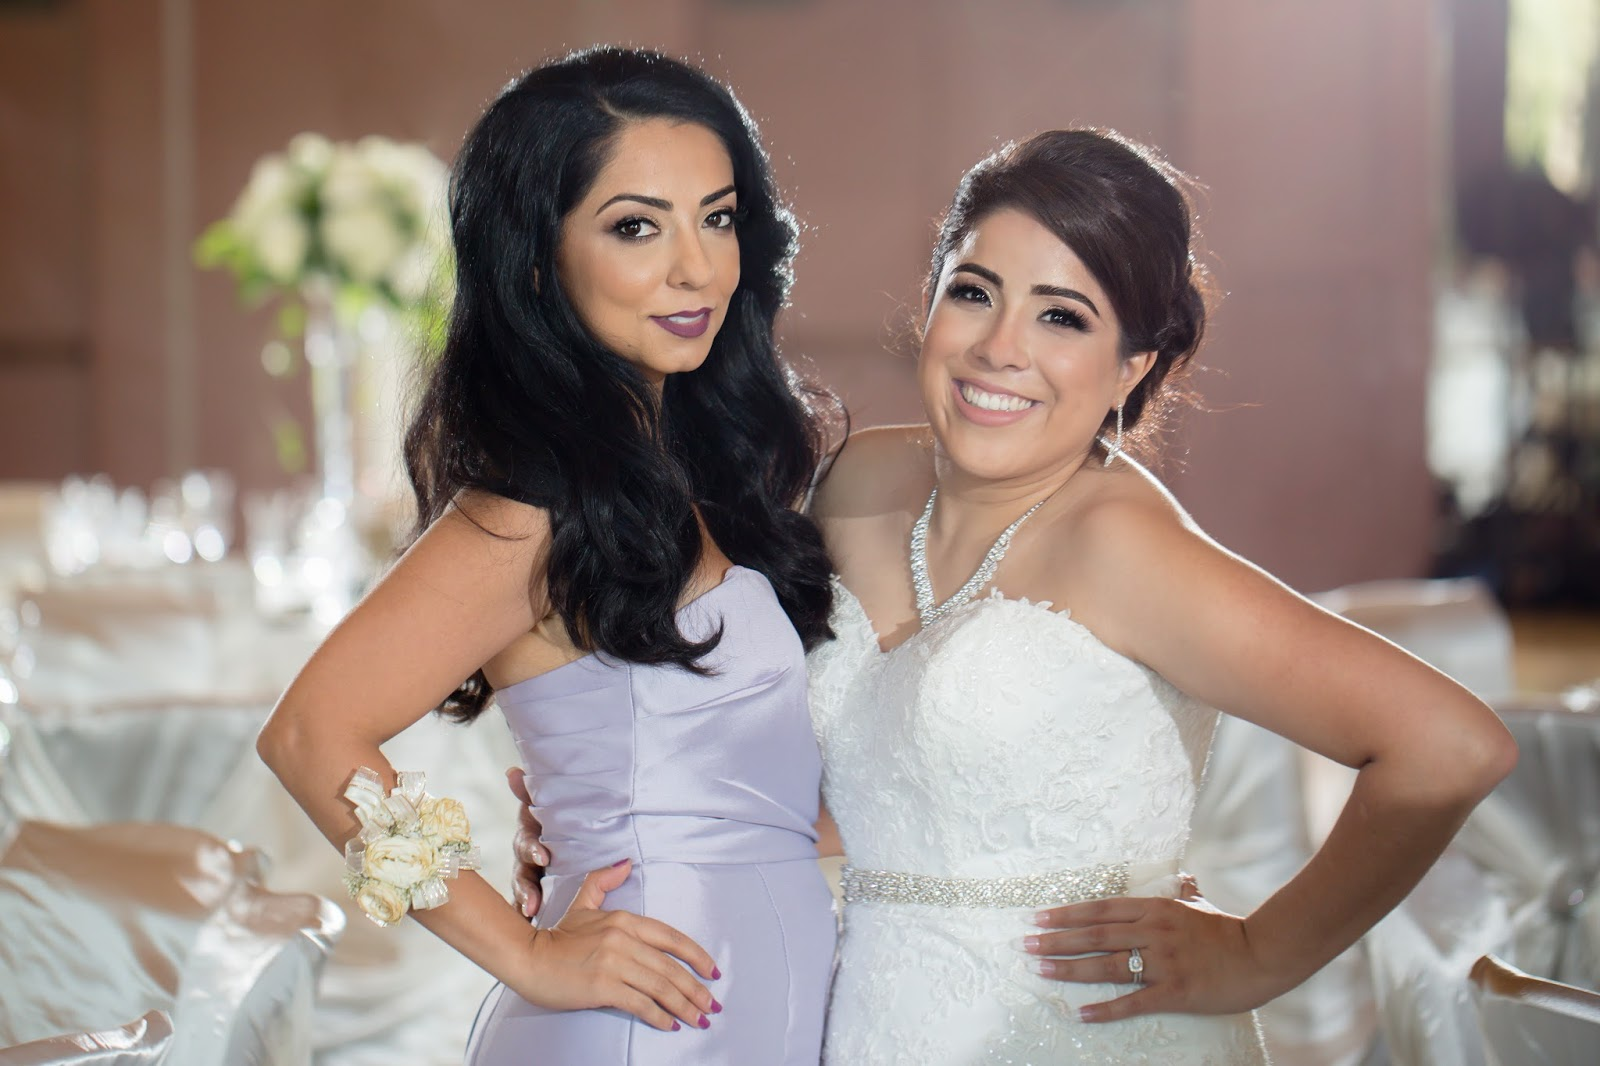 Bride and Matron of Honor